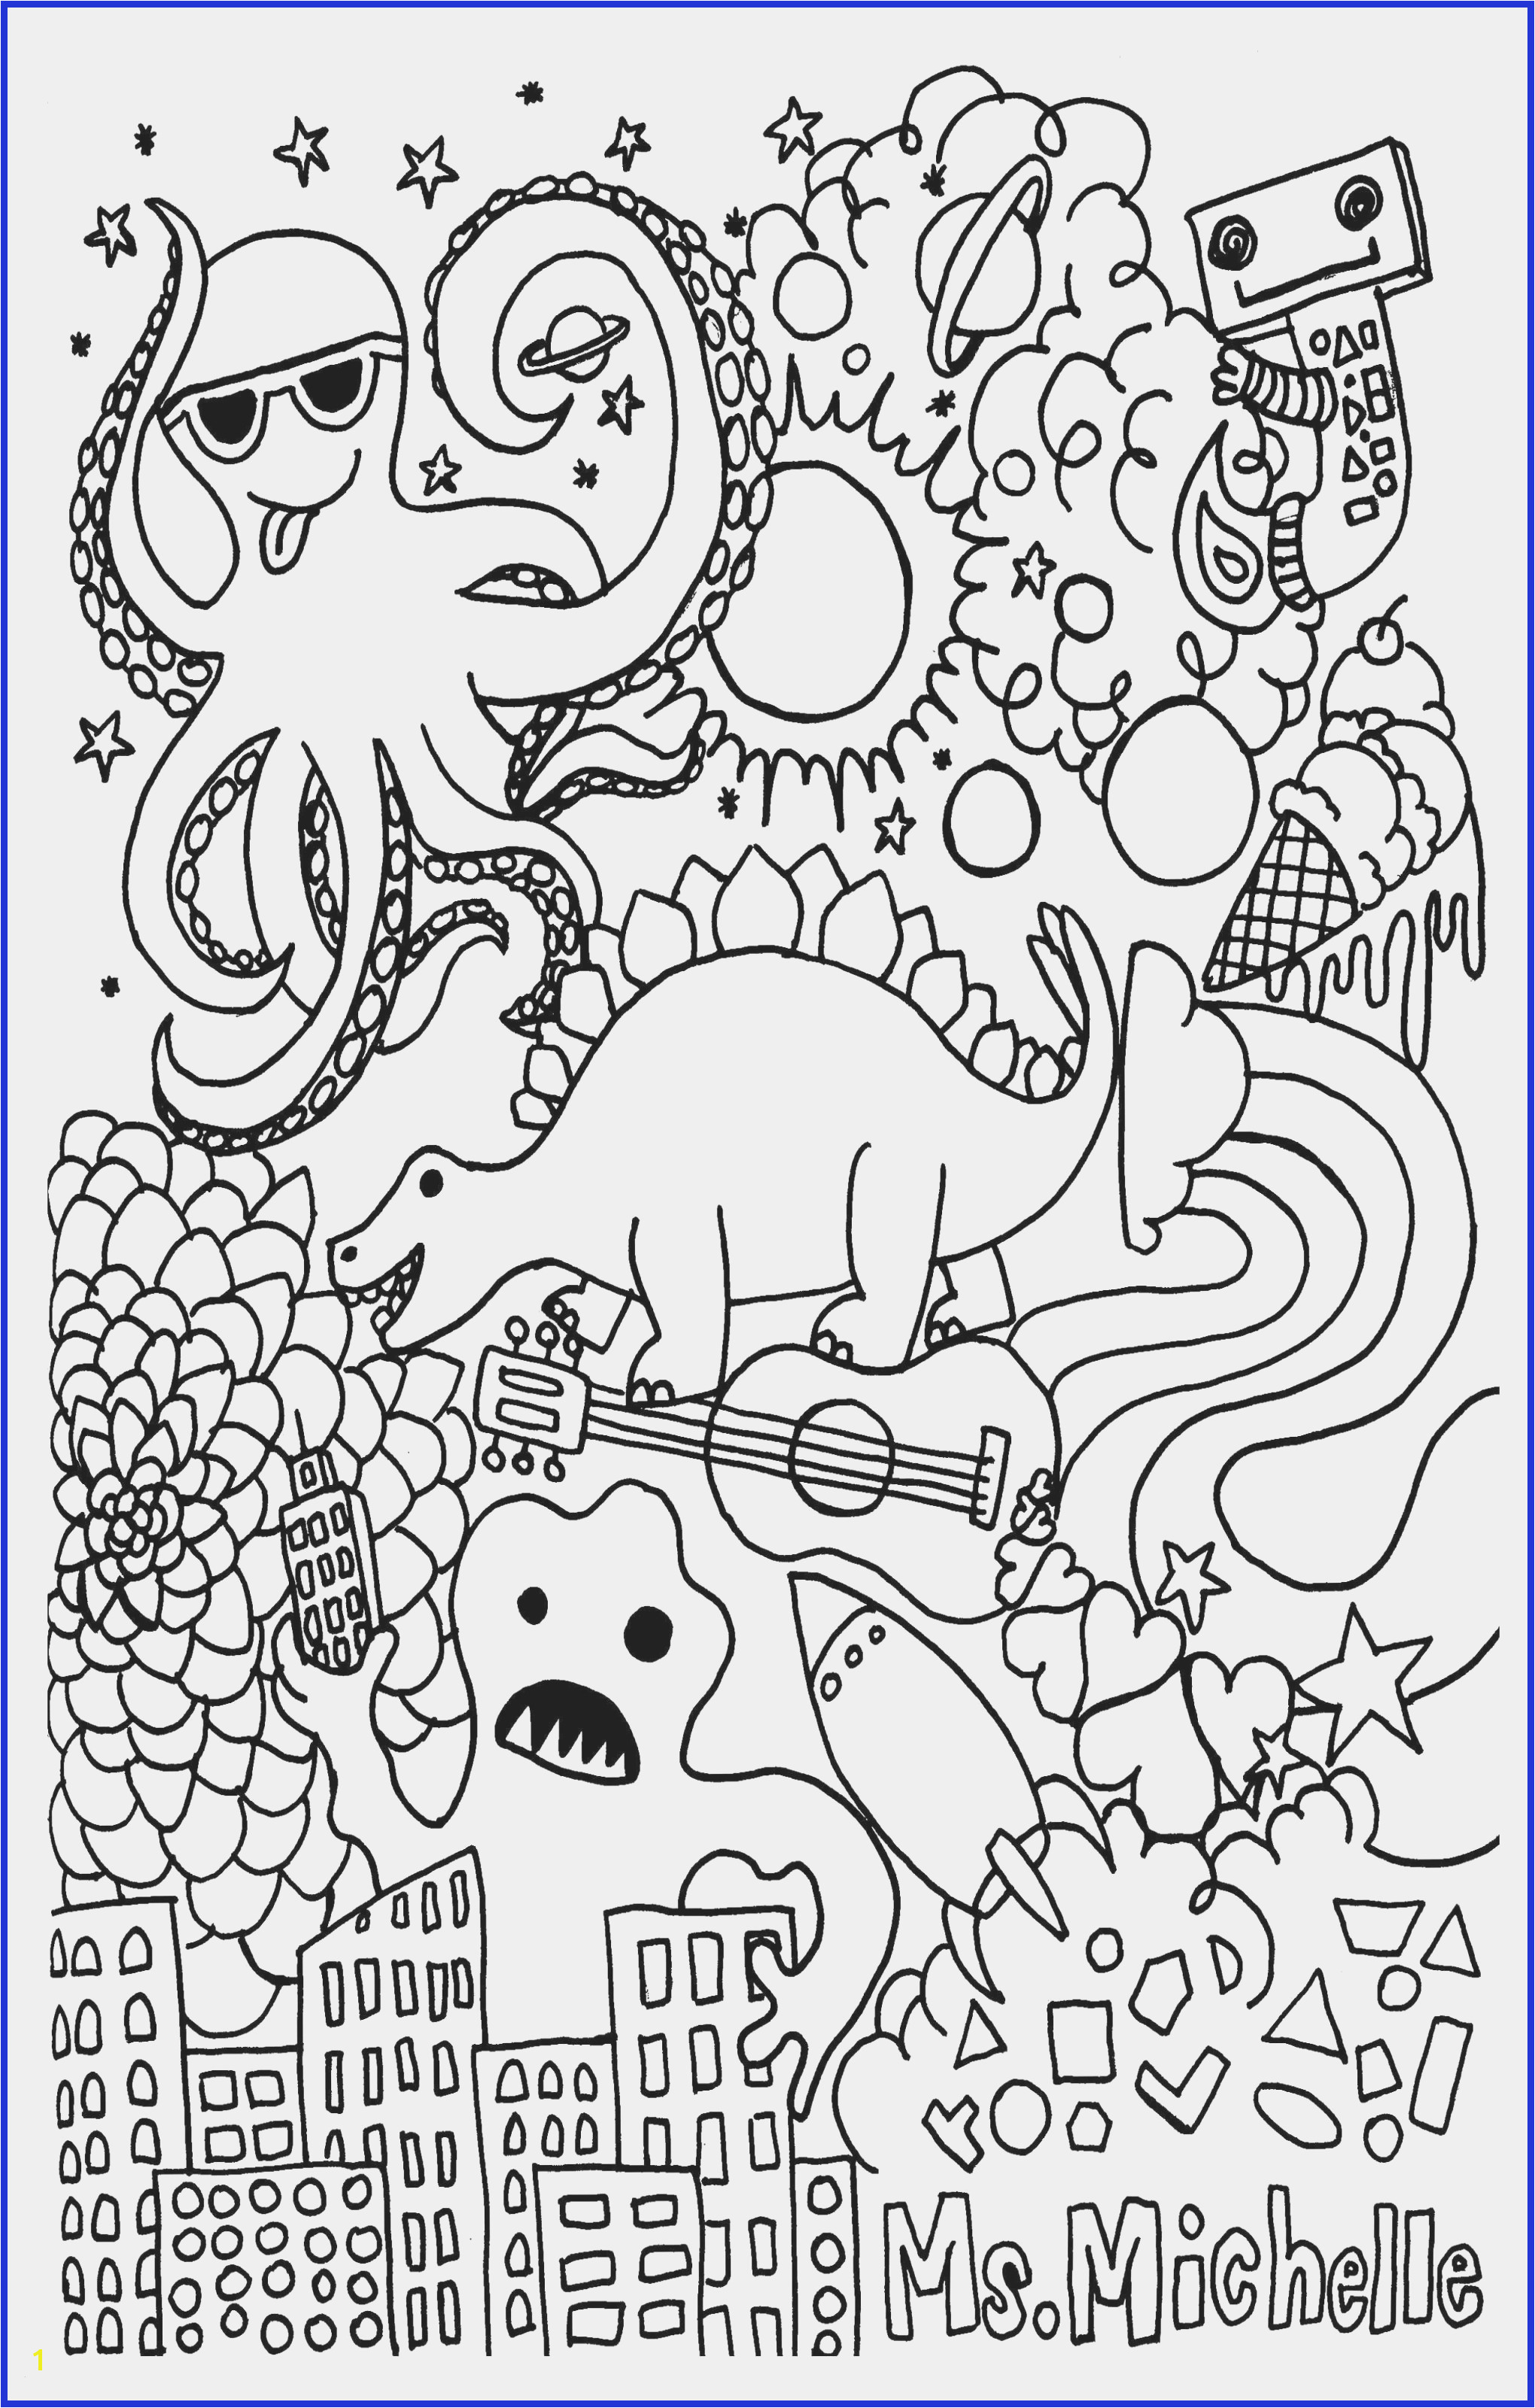 Free Animal Coloring Pages for Kids Inspirational Coloring Pages Beautiful Printable Cds 0d – Printable